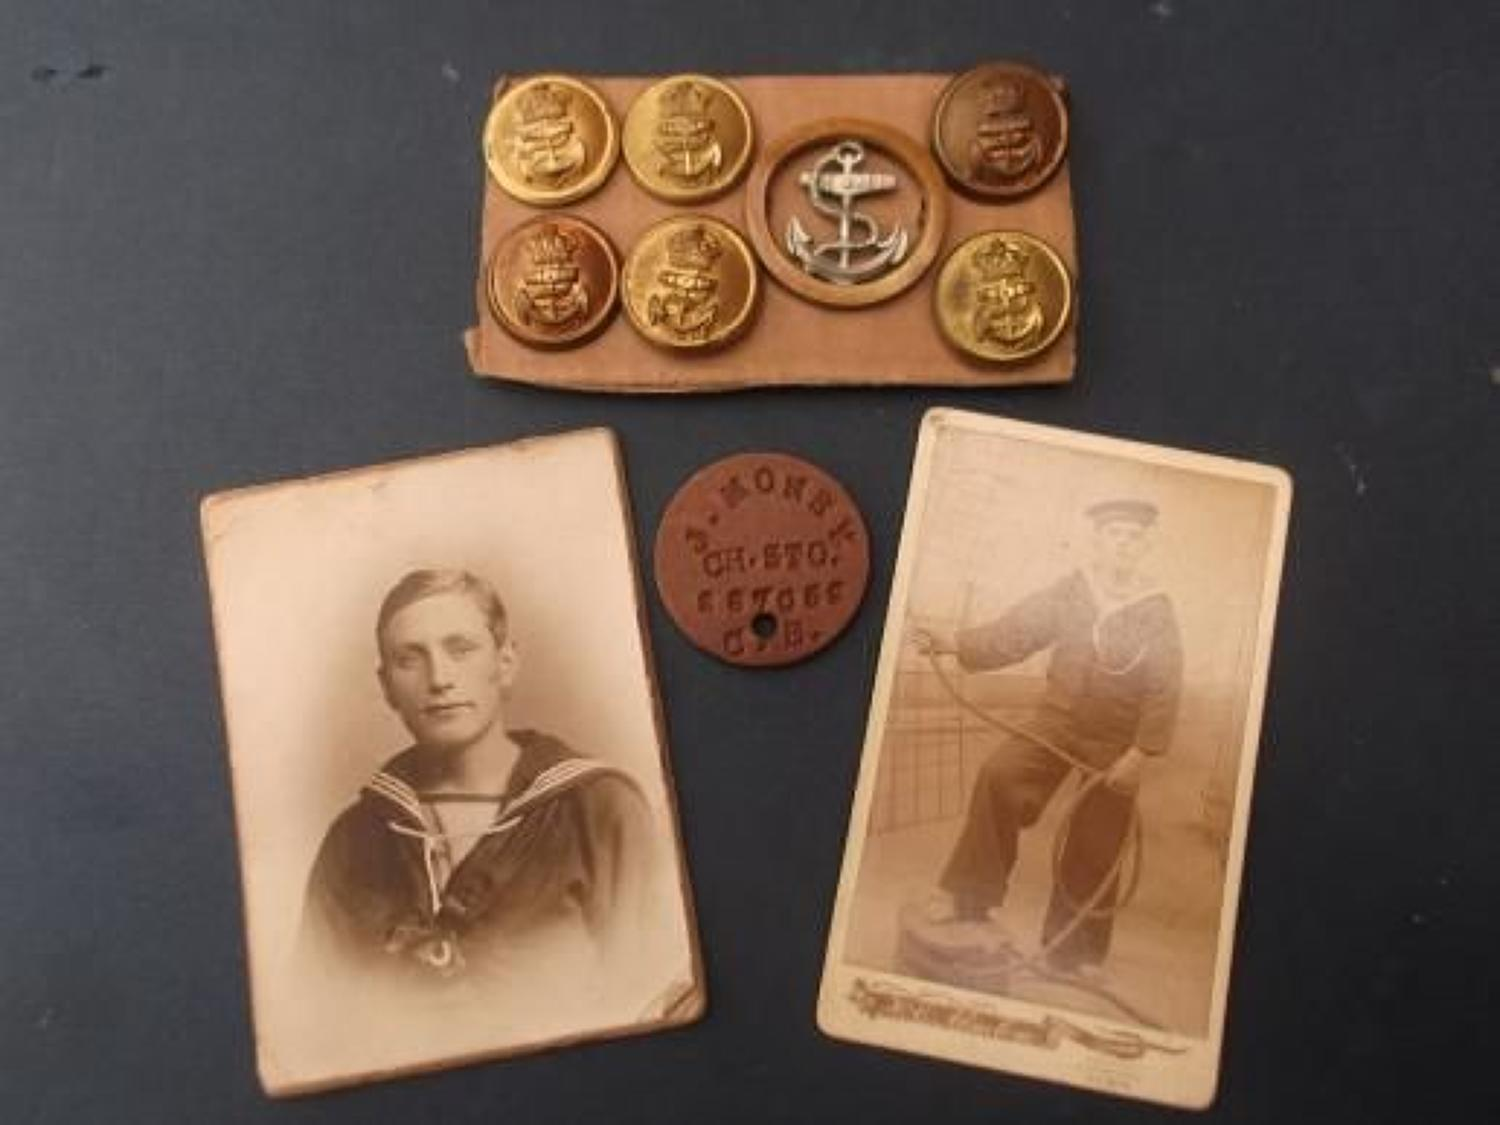 ROYAL NAVY IDENTFICATION TAG & PHOTOGRAPHS